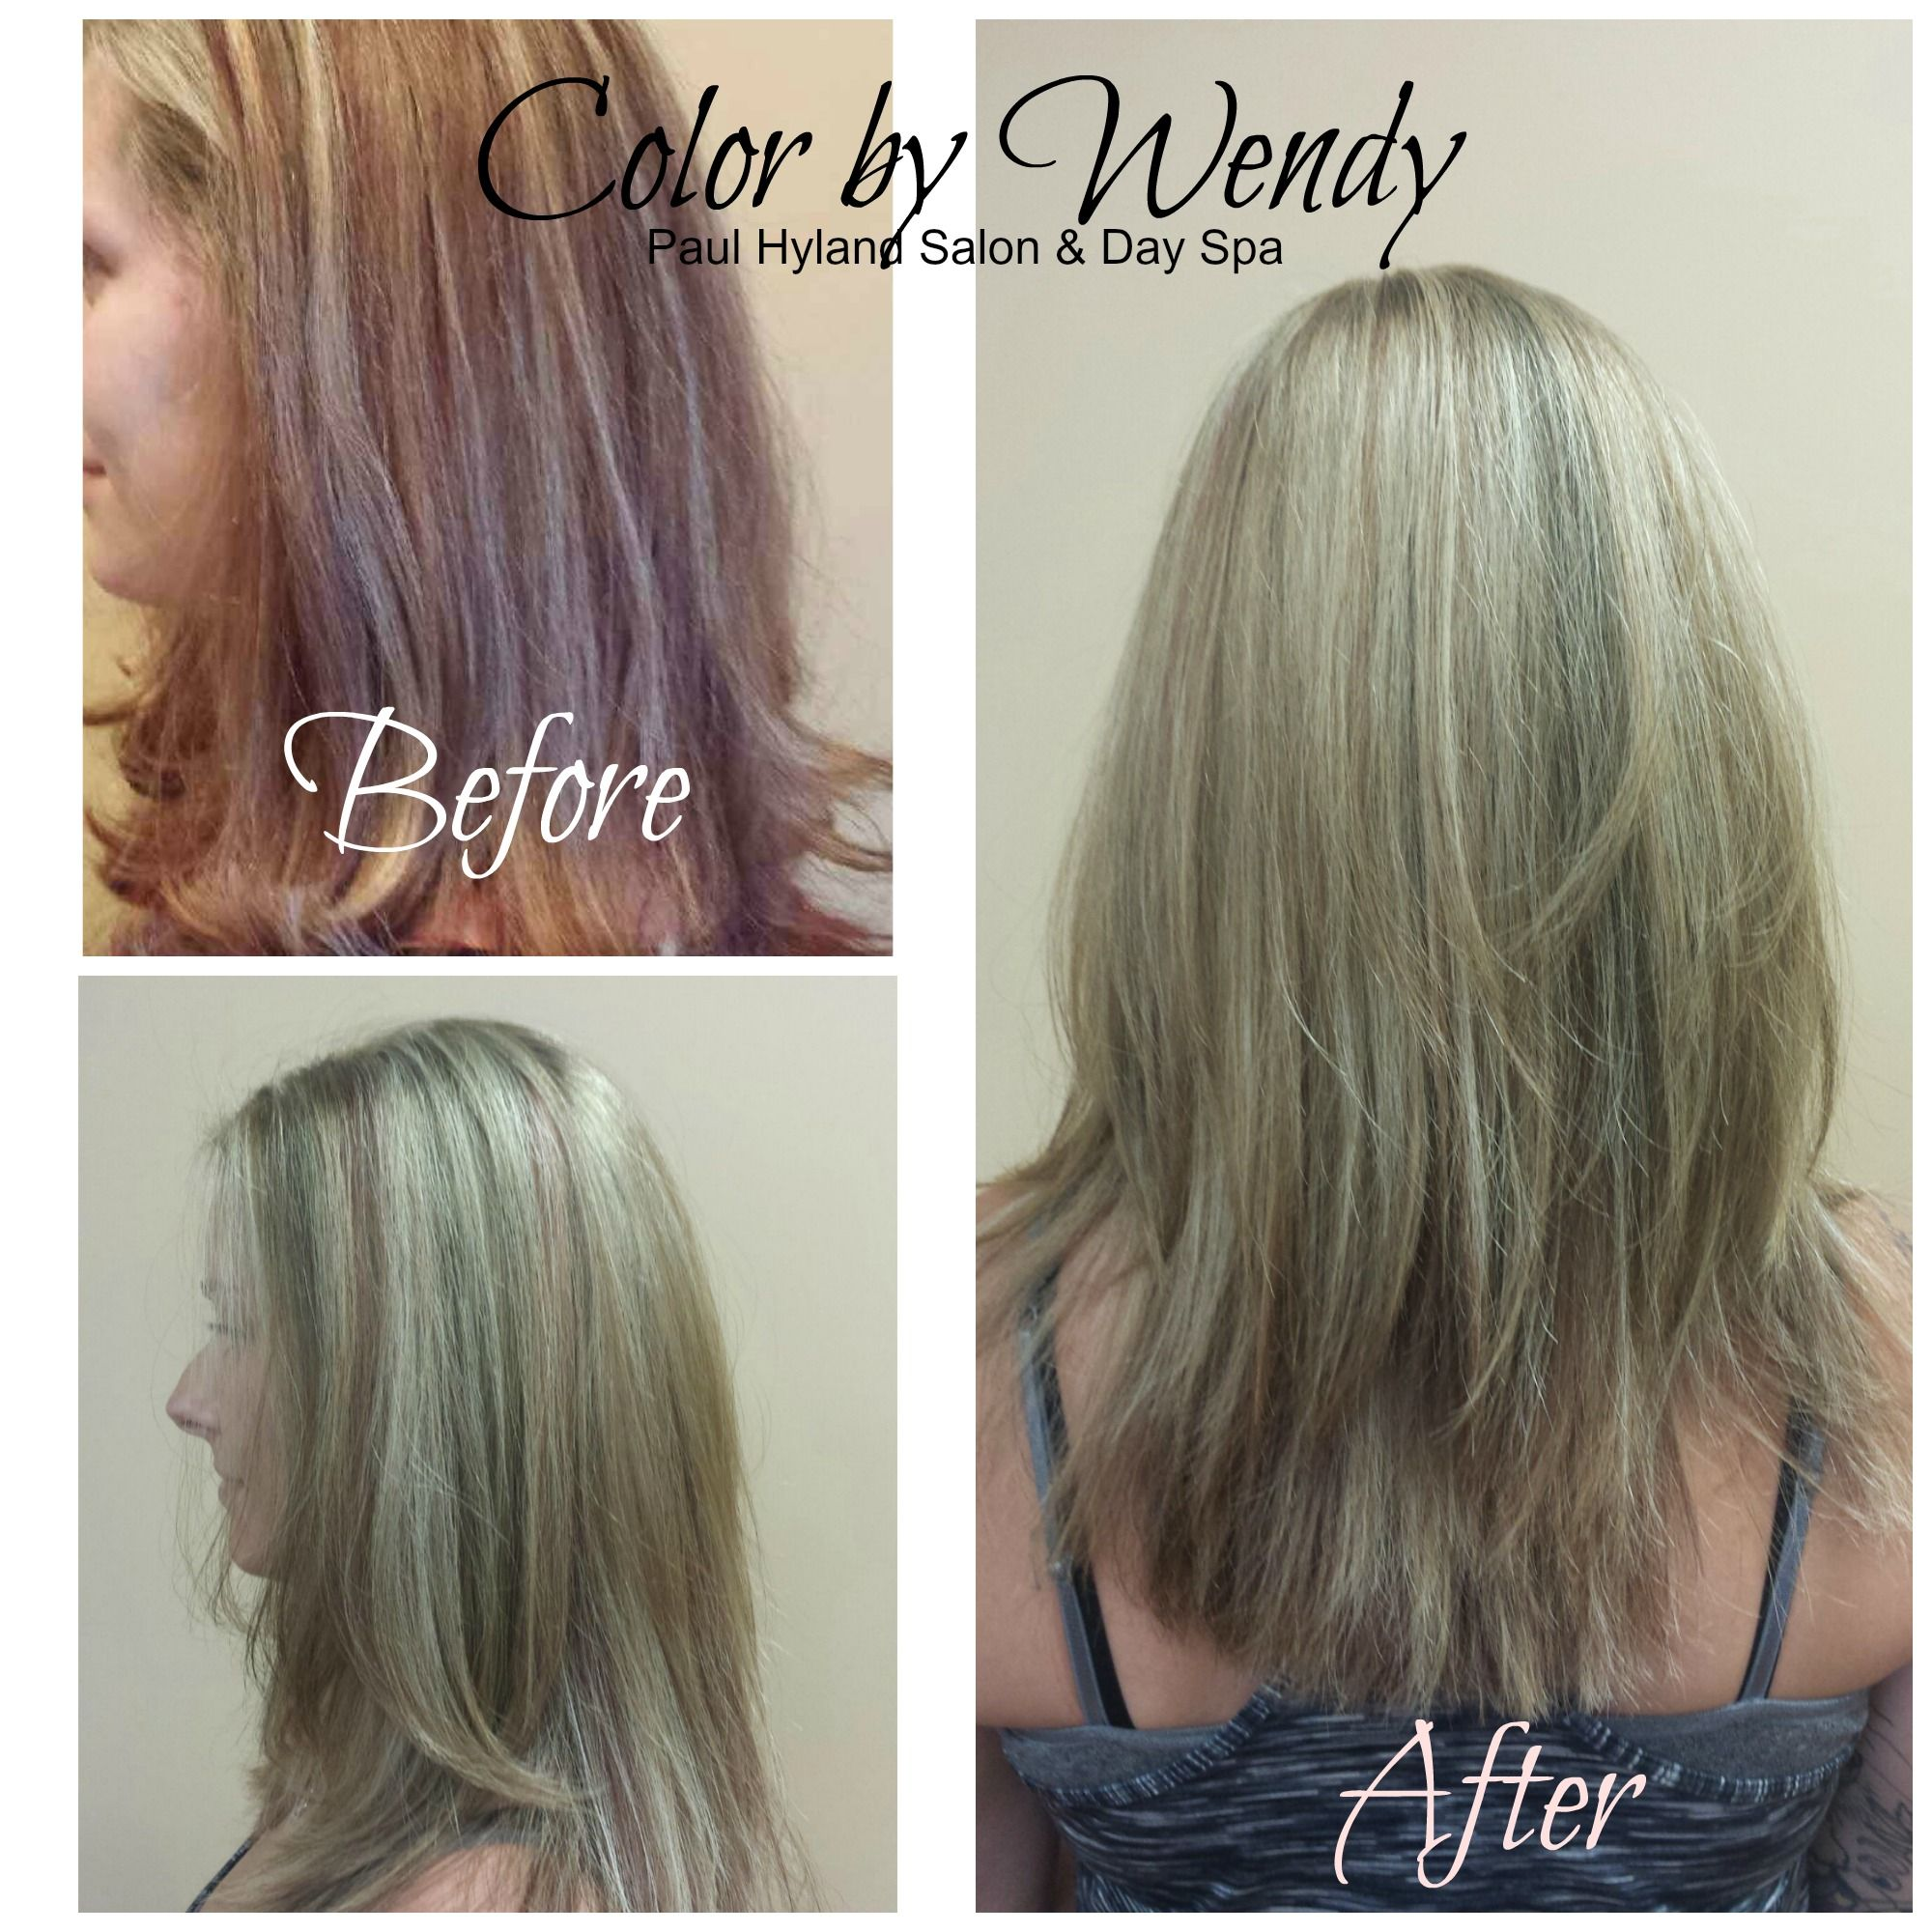 Wendy transformed her client's hair to this beautiful, lighter color, leaving a hint of the darker shades for interest.